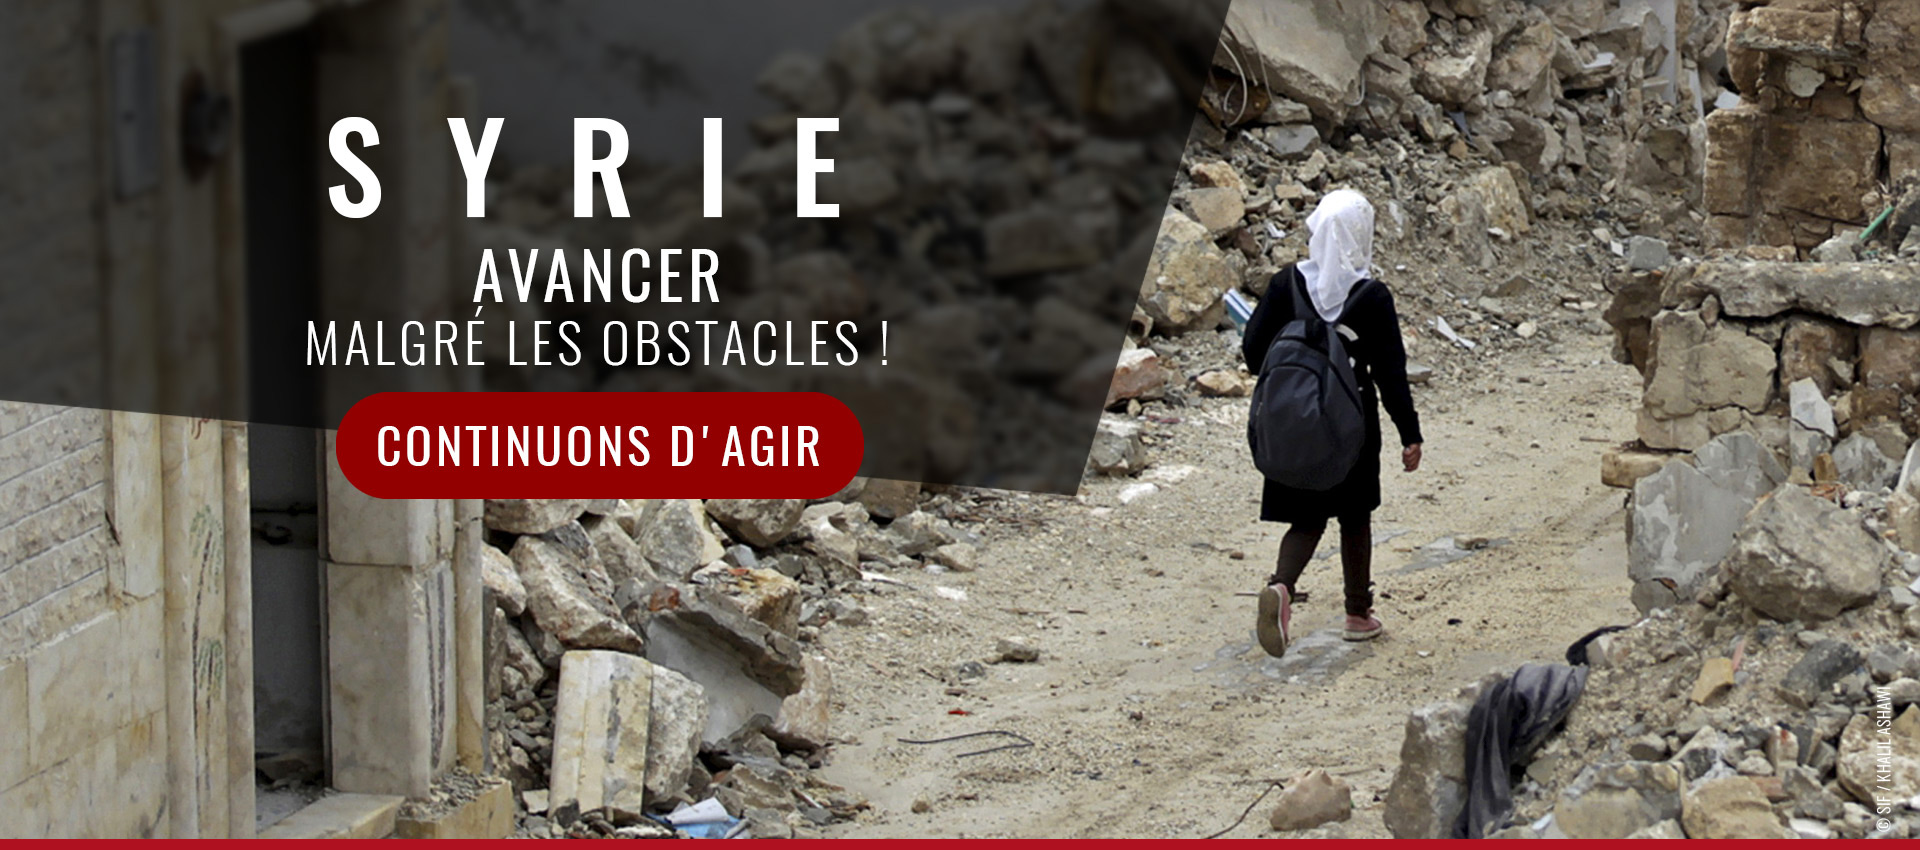 images/Nouveau-site/carousel/big-ban-syrie-sif-2019.jpg